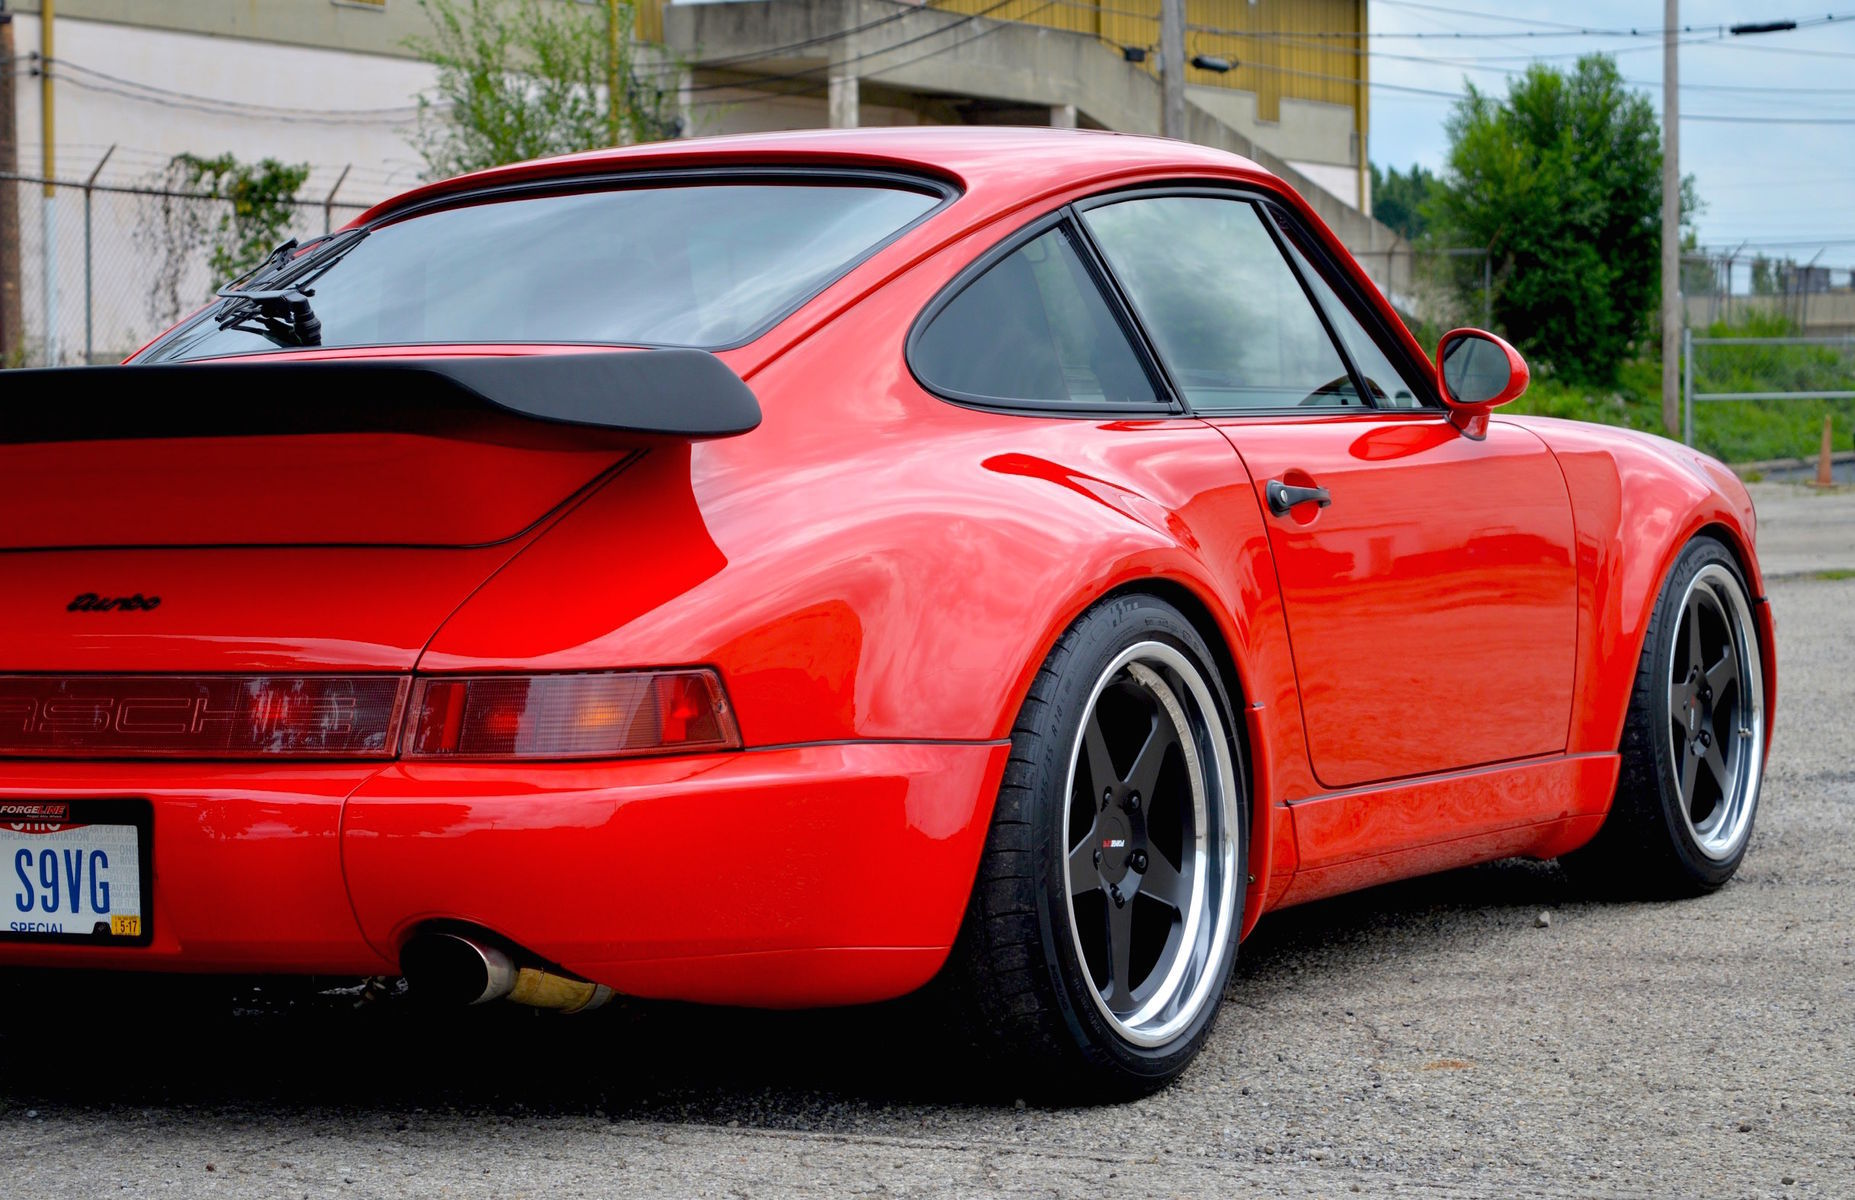 1991 Porsche 964 | Dave Schardt's Porsche 964 Turbo on Forgeline Heritage Series FF3 Wheels